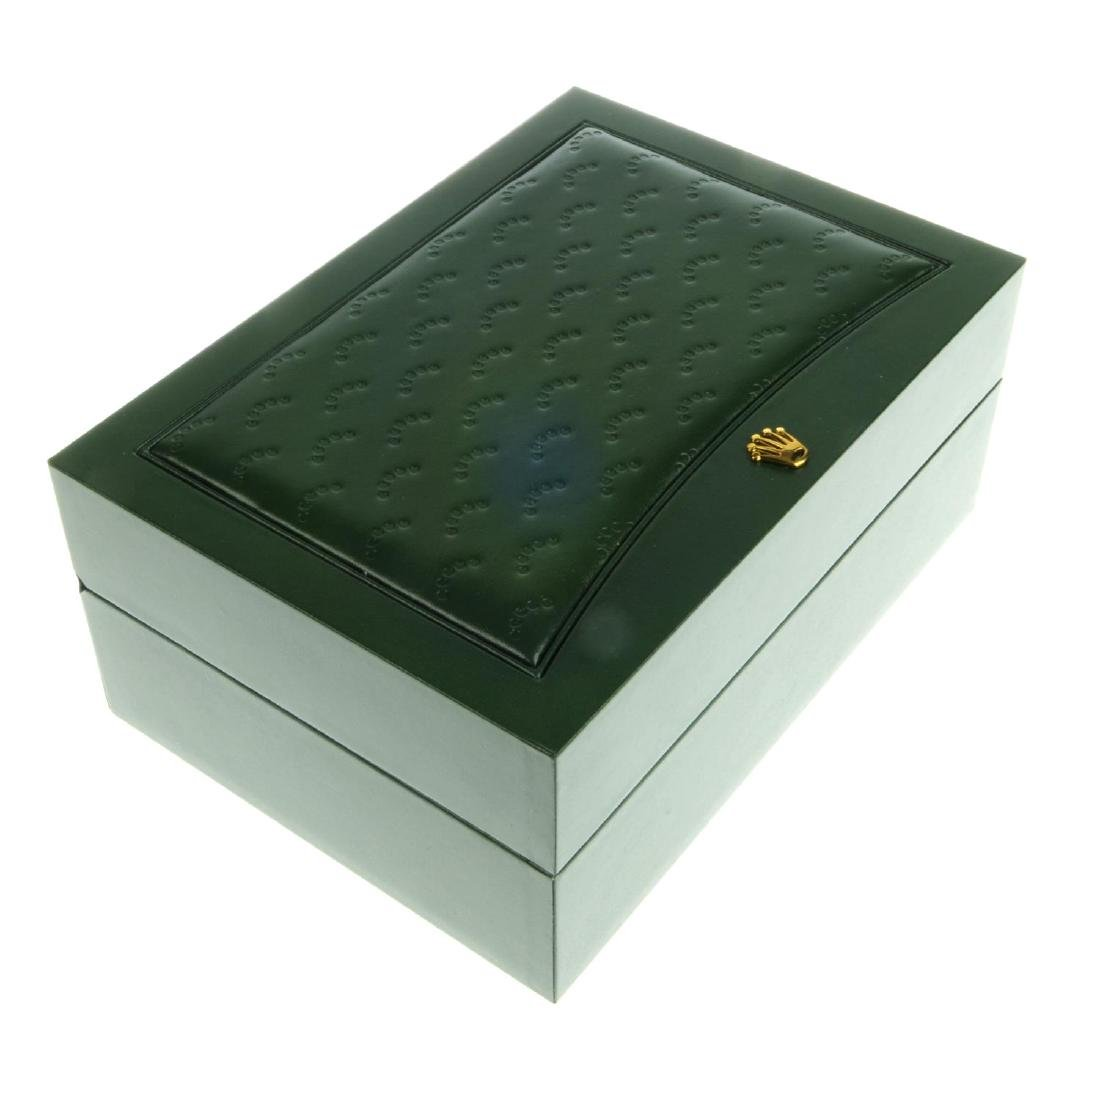 ROLEX - a complete Cellini watch box.